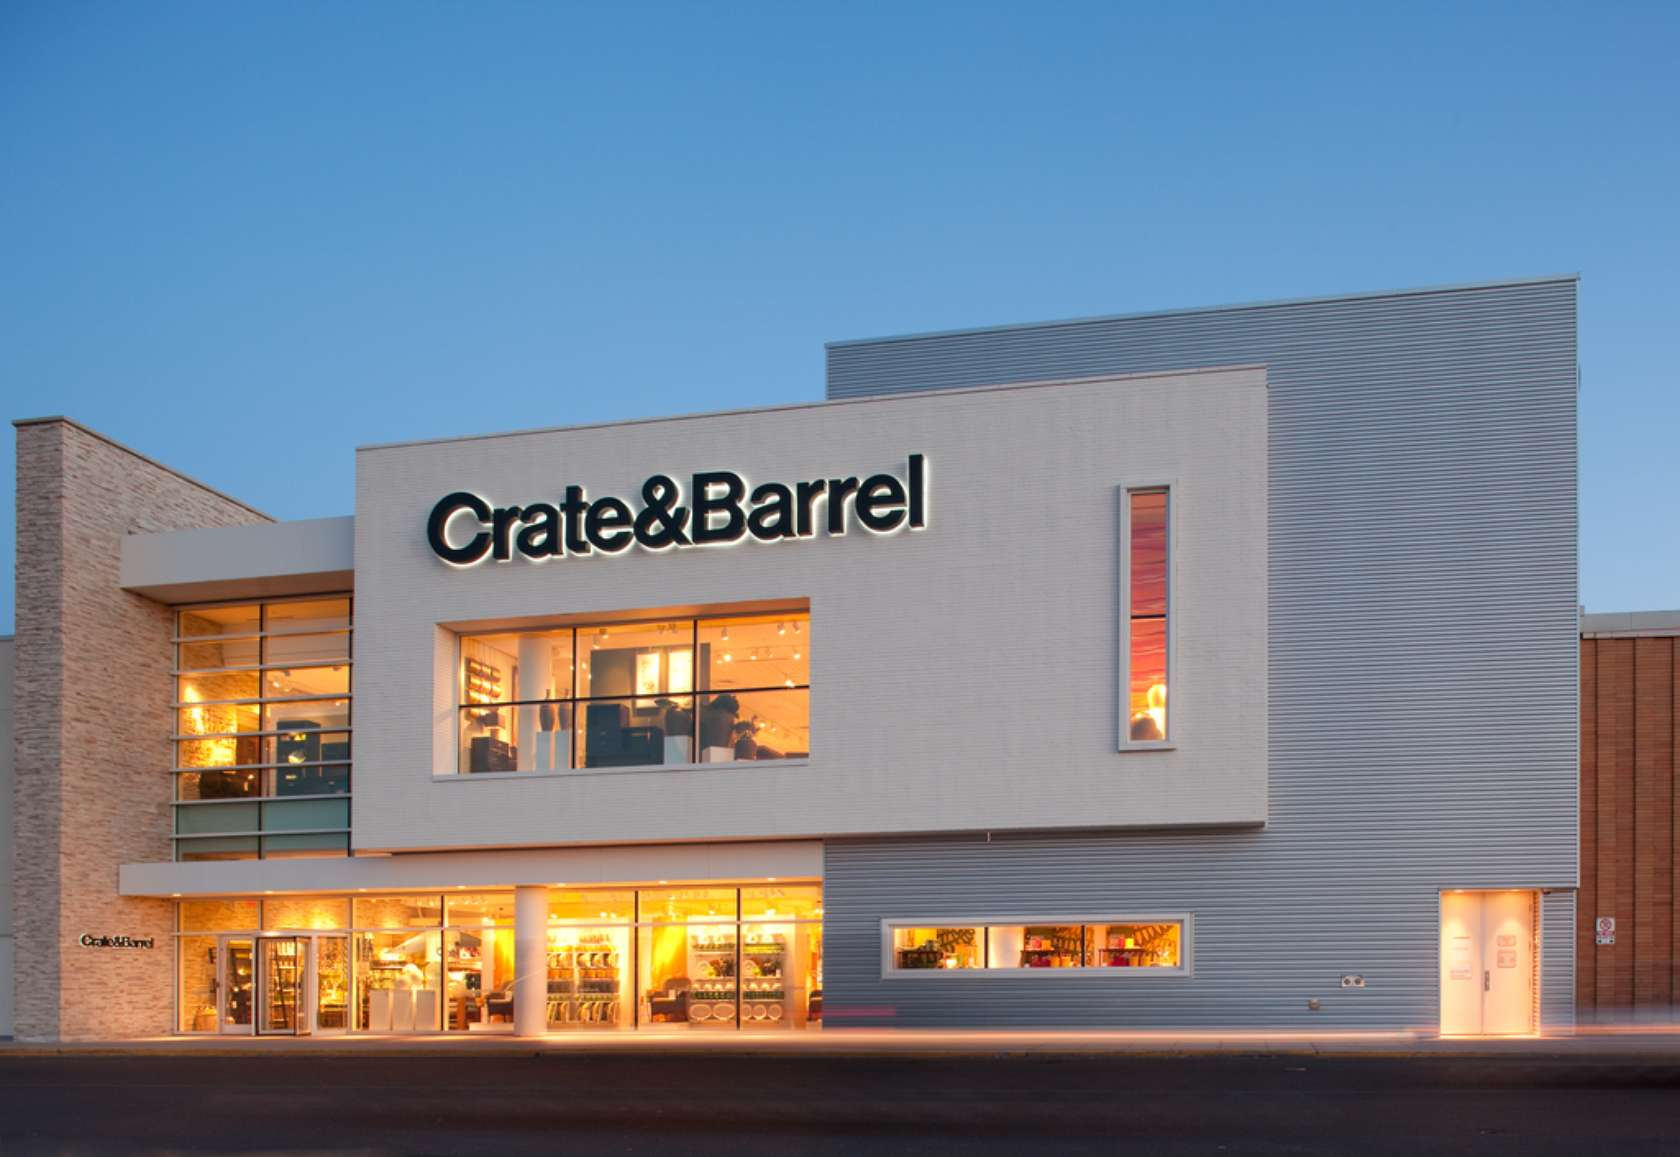 Crate barrel architizer for Crate and barrel arch